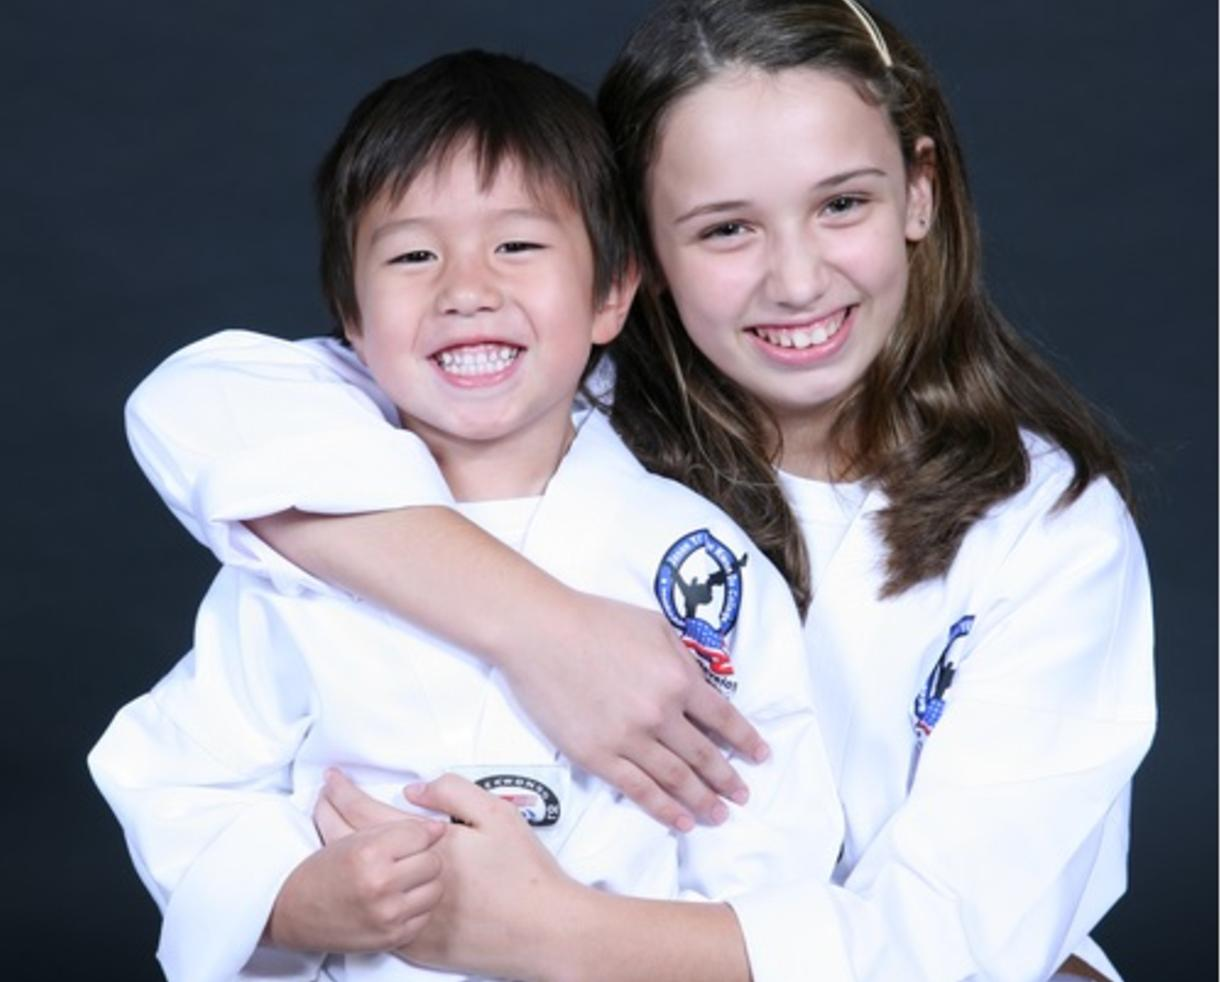 $19.95 for One Week of After School Program - Pick Up from 60+ Schools or 4 Weeks of UNLIMITED Lessons + T-Shirt at Life Champ Martial Arts for Ages 3+ at SIX VA LOCATIONS!! (Up to 92% Off)